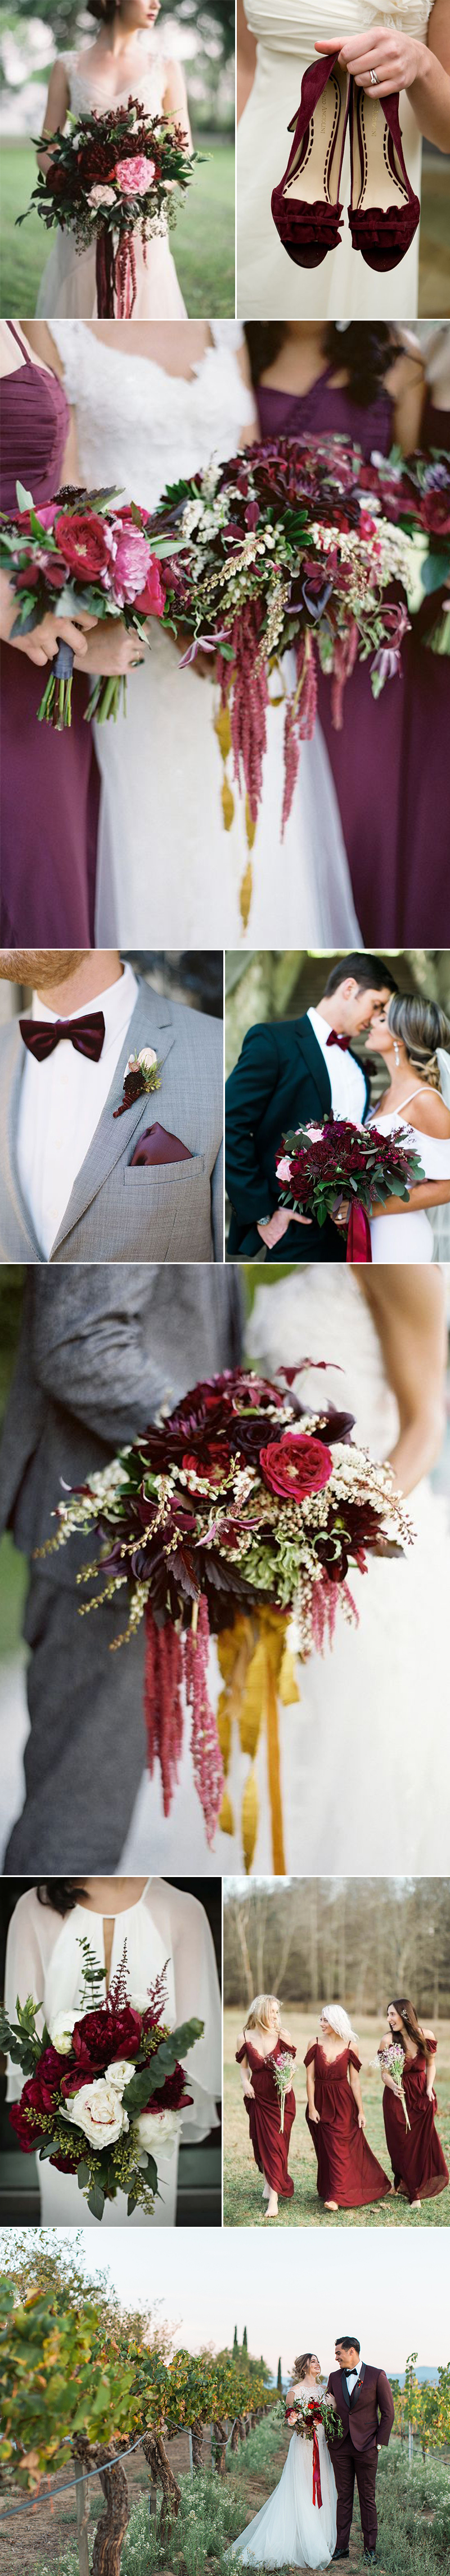 Winter Wedding in Bordeaux Reds